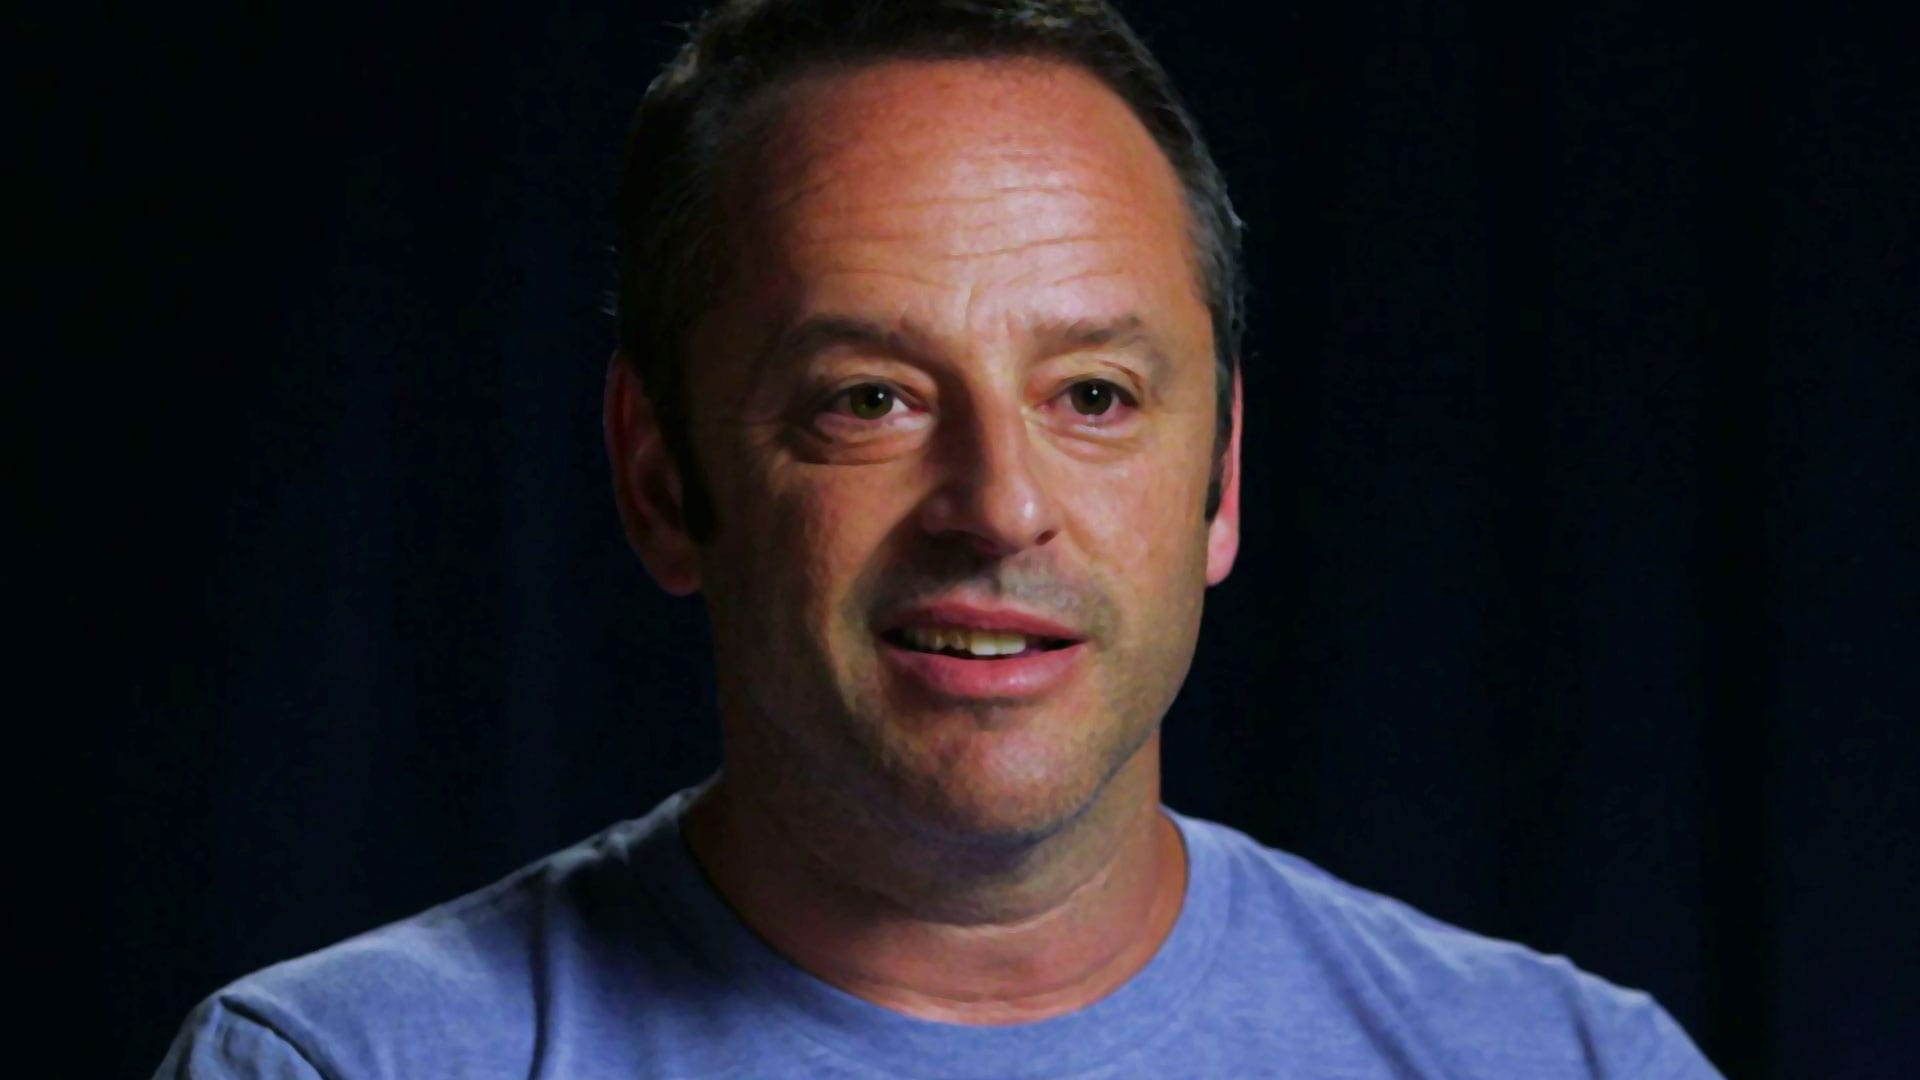 Gil Bellows Wallpapers hd